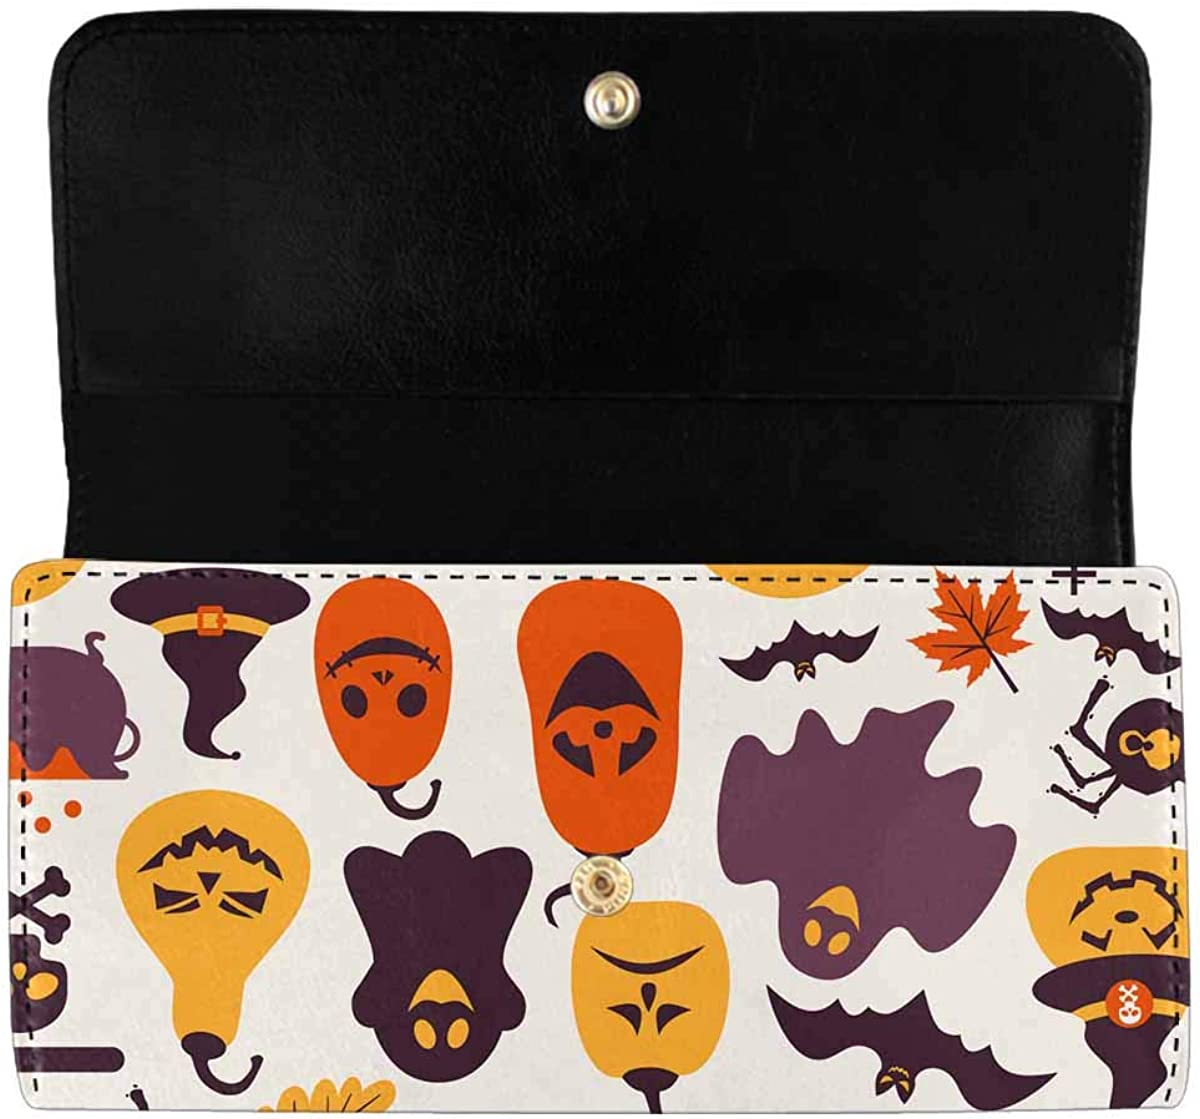 INTERESTPRINT Women's Trifold Long Clutch Wallets Owl with Tribal Ornament PU Leather Clutch Bag